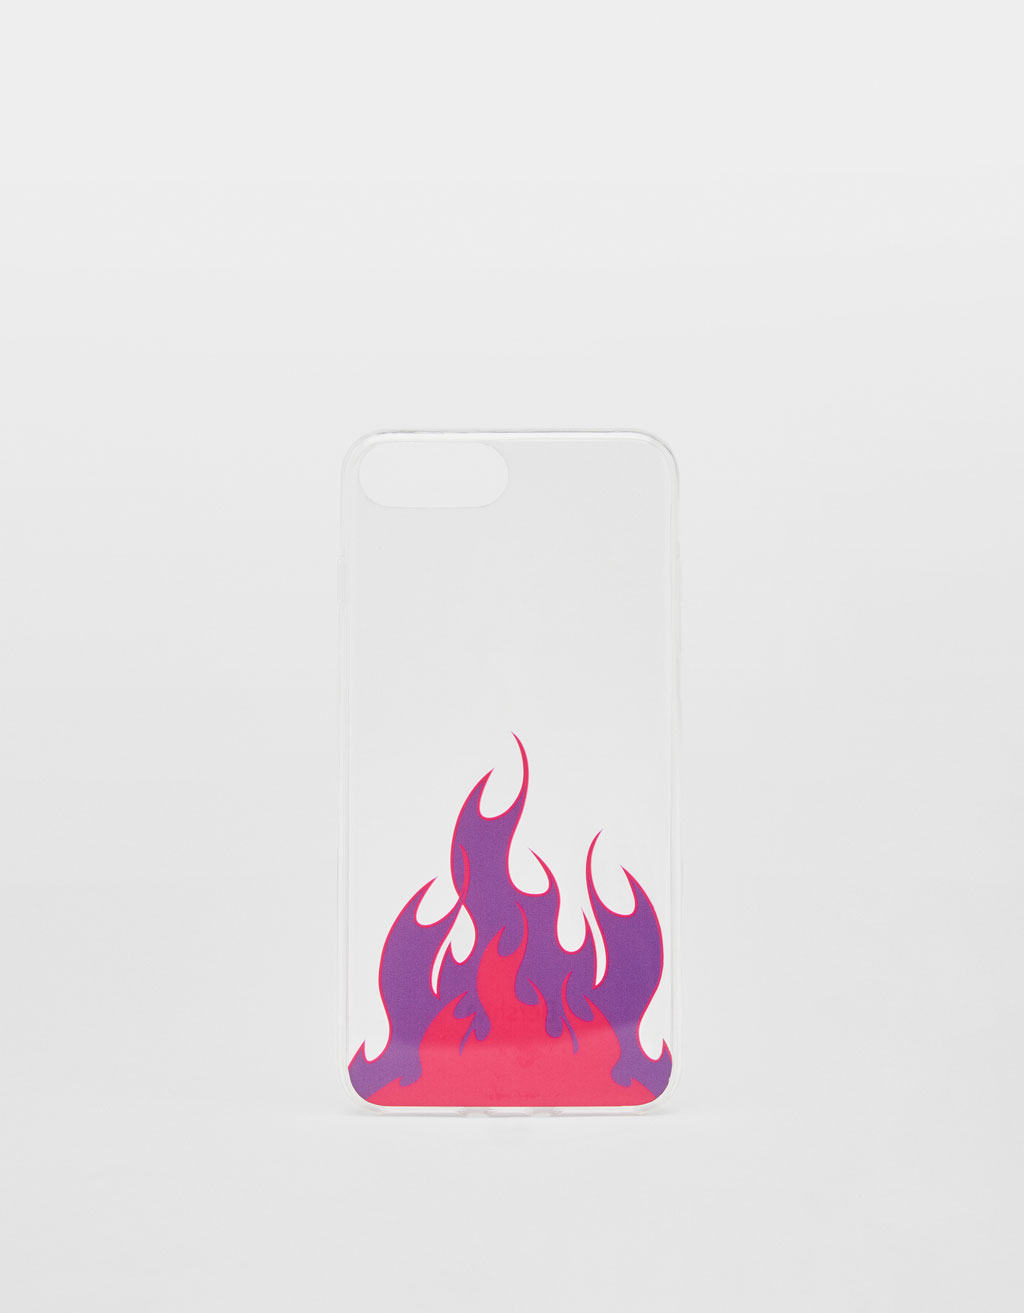 Carcassa flames iPhone 6 plus/7 plus/8 plus